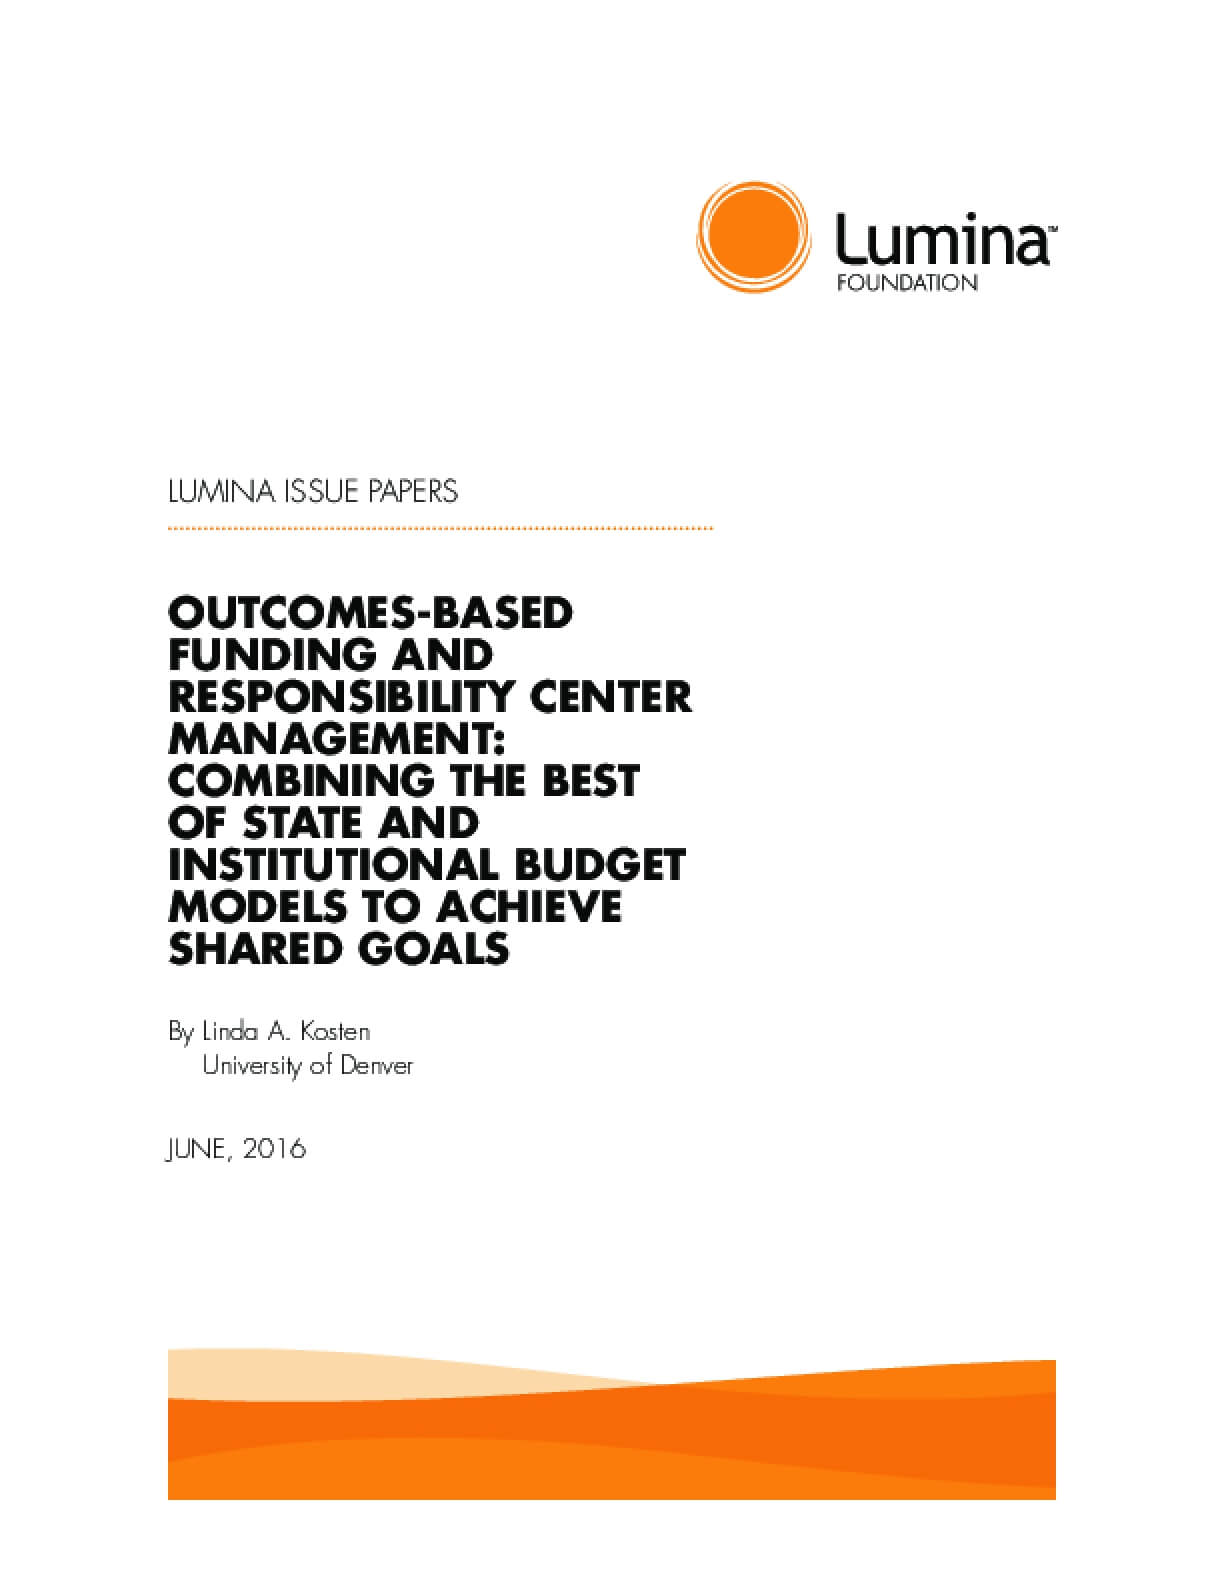 Outcomes-based Funding and Responsibility Center Management: Combining the Best of State and Institutional Budget Models to Achieve Shared Goals